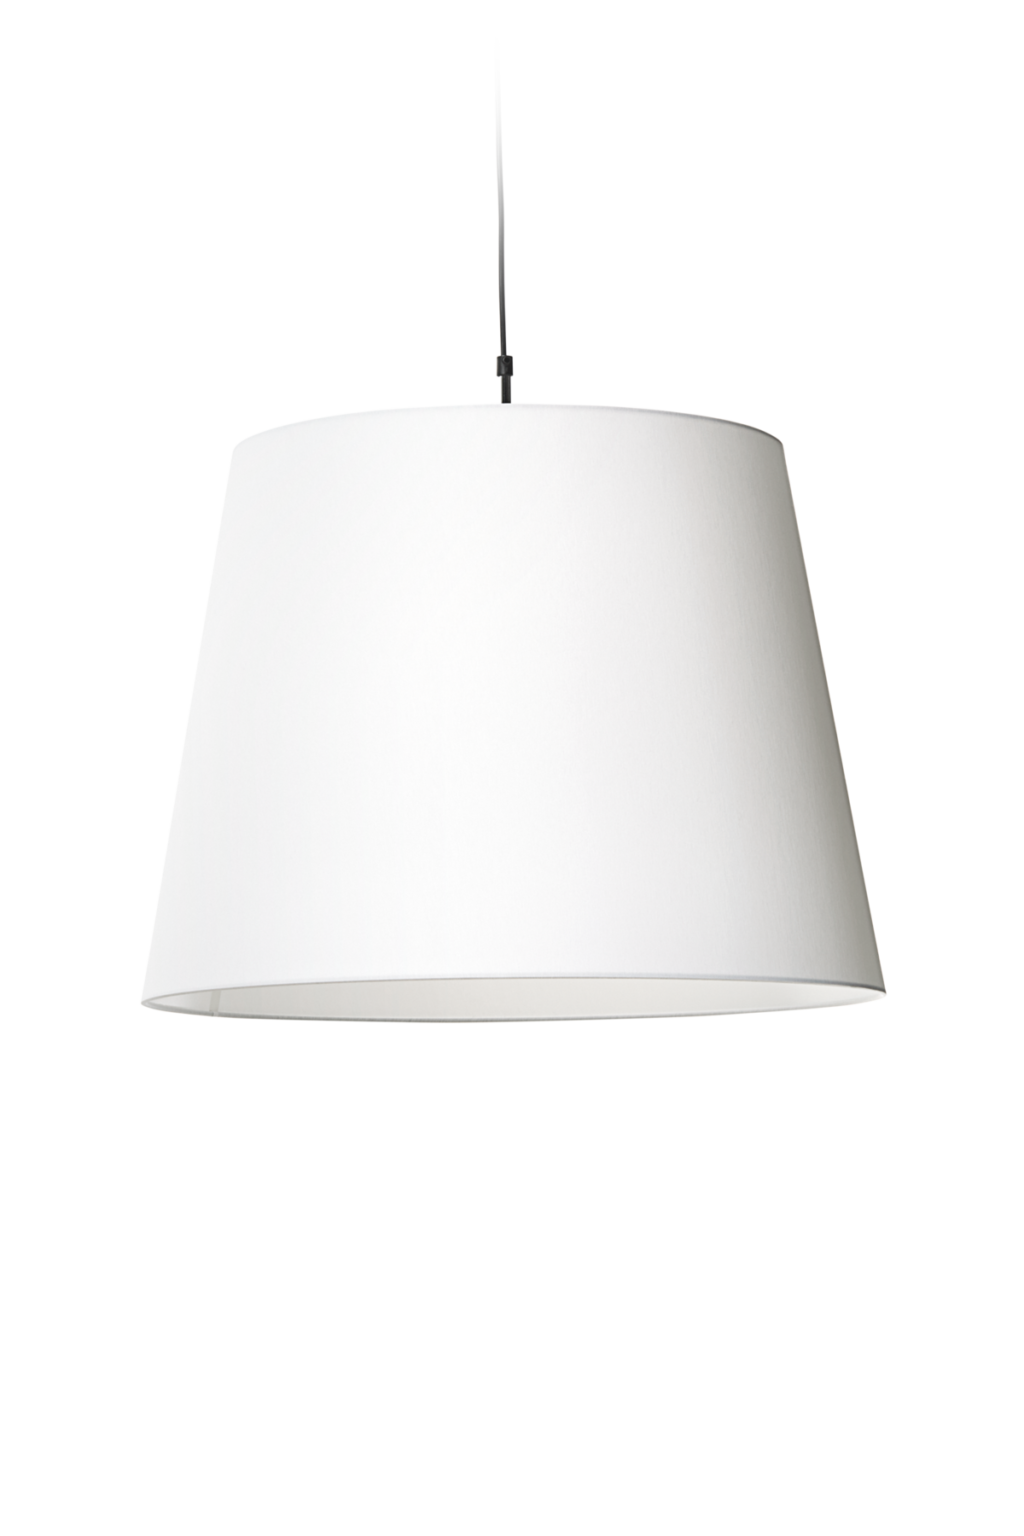 https://desidea.hu/wp-content/uploads/fly-images/160132/moooi-hang-fuggesztett-lampa1-1024x0.png